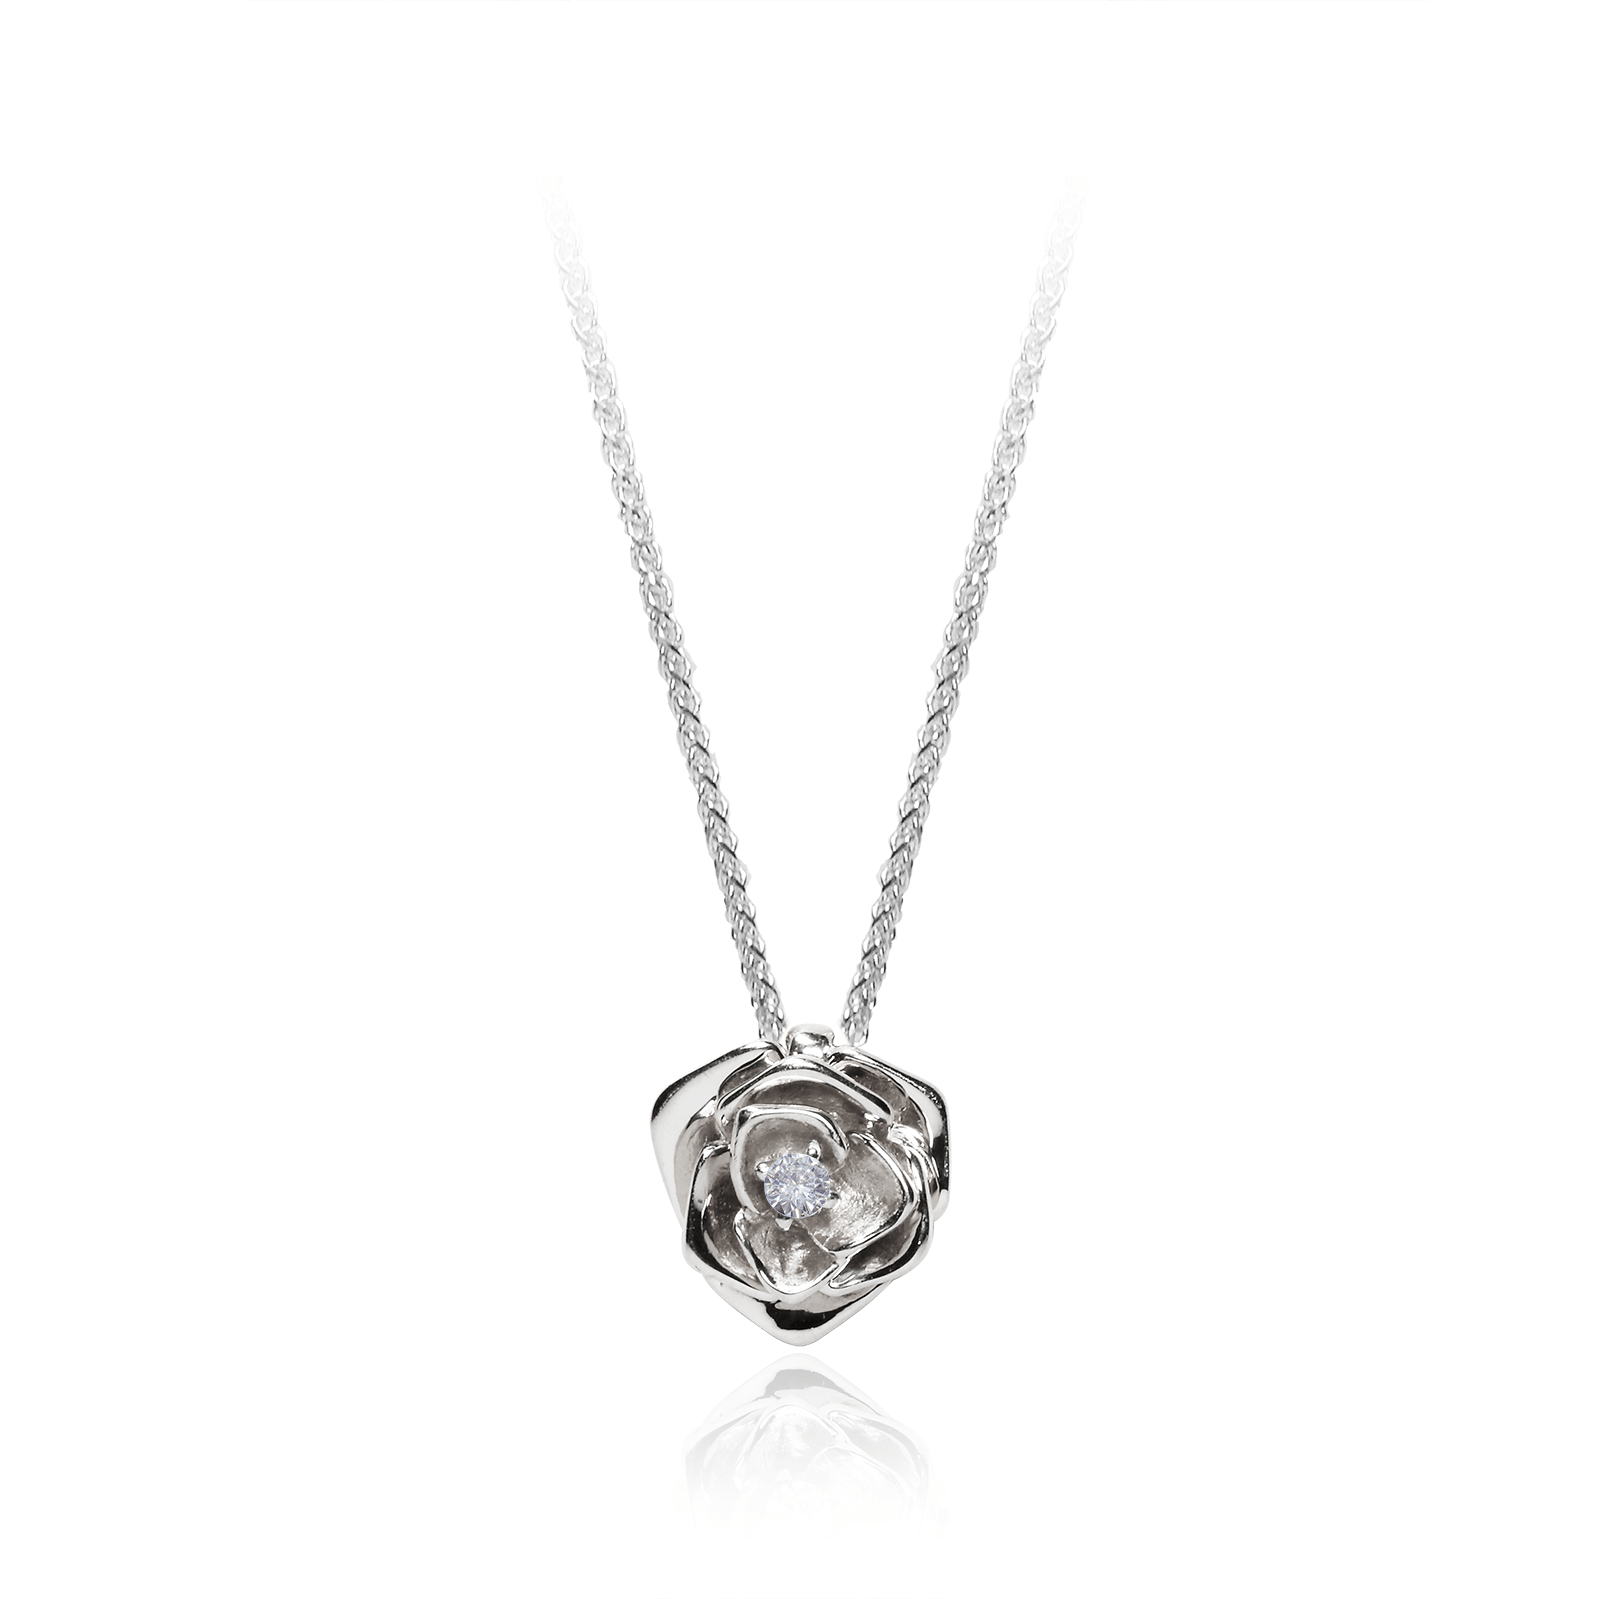 diamant 0,05 ct - 2x